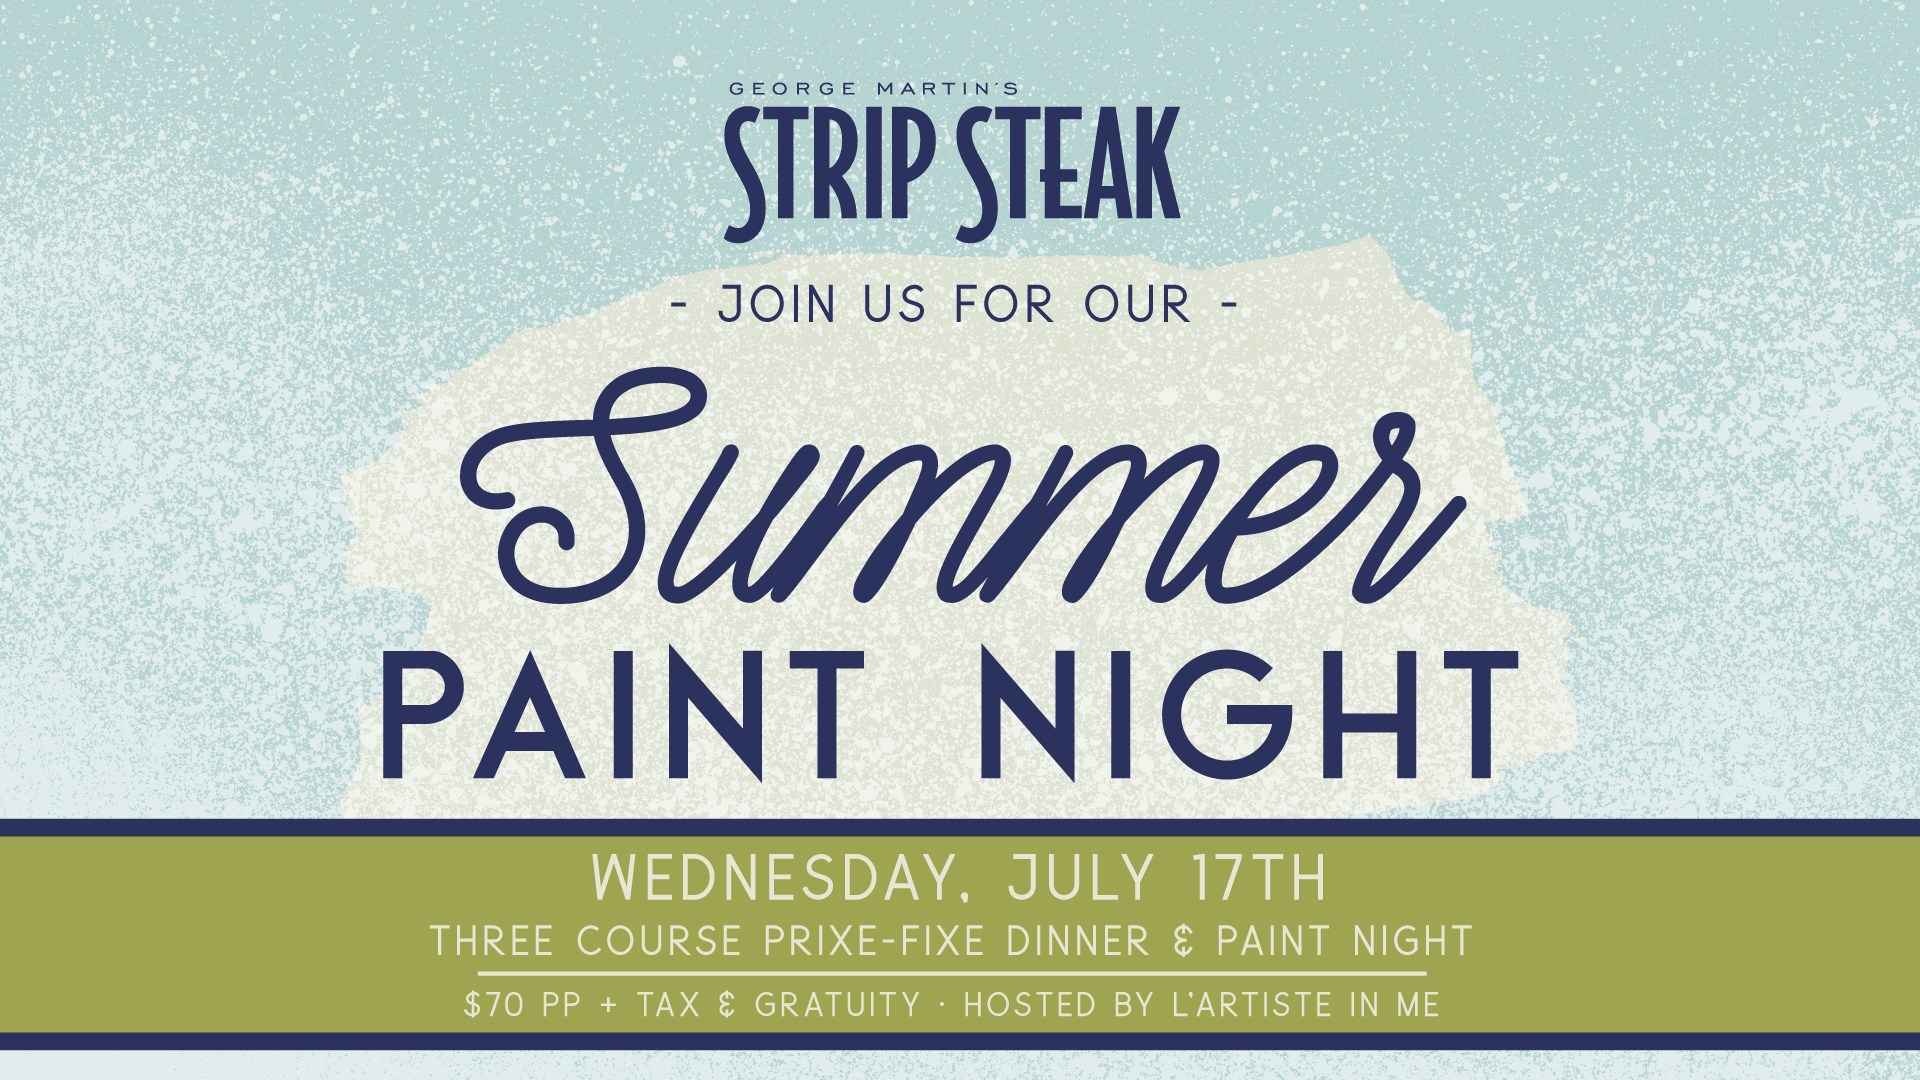 Flyer for Strip Steak Summer Paint Night on Wednesday July 17th